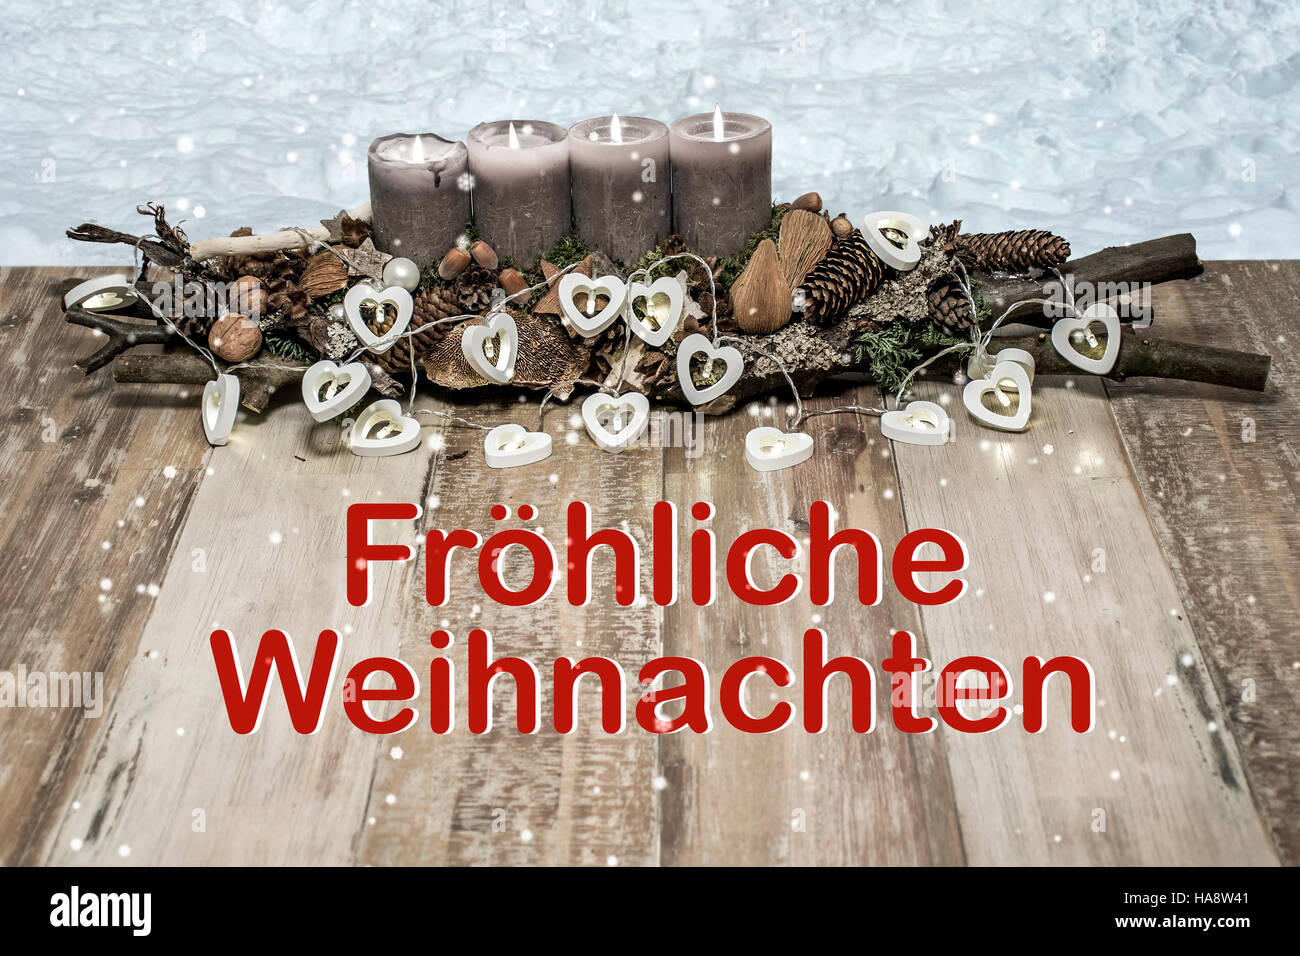 German Greeting Stockfotos & German Greeting Bilder - Seite 2 - Alamy